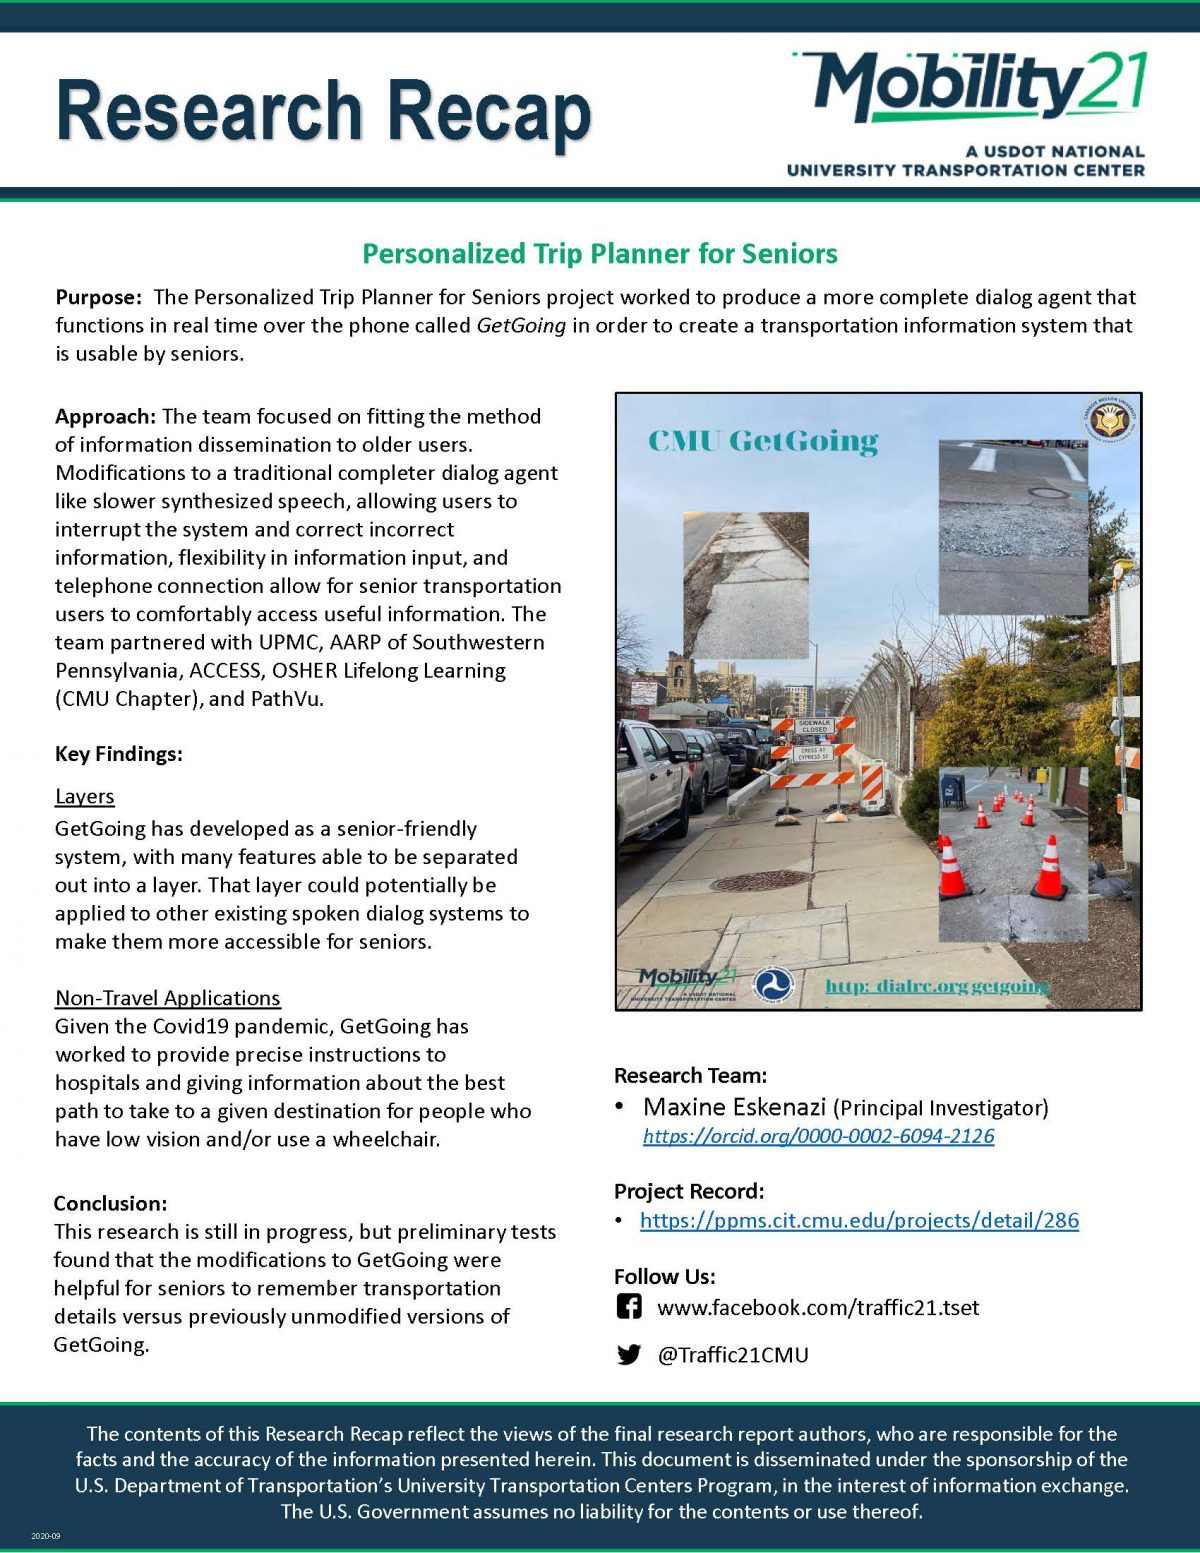 Image of the Research Recap - Personalized Trip Planner for Seniors